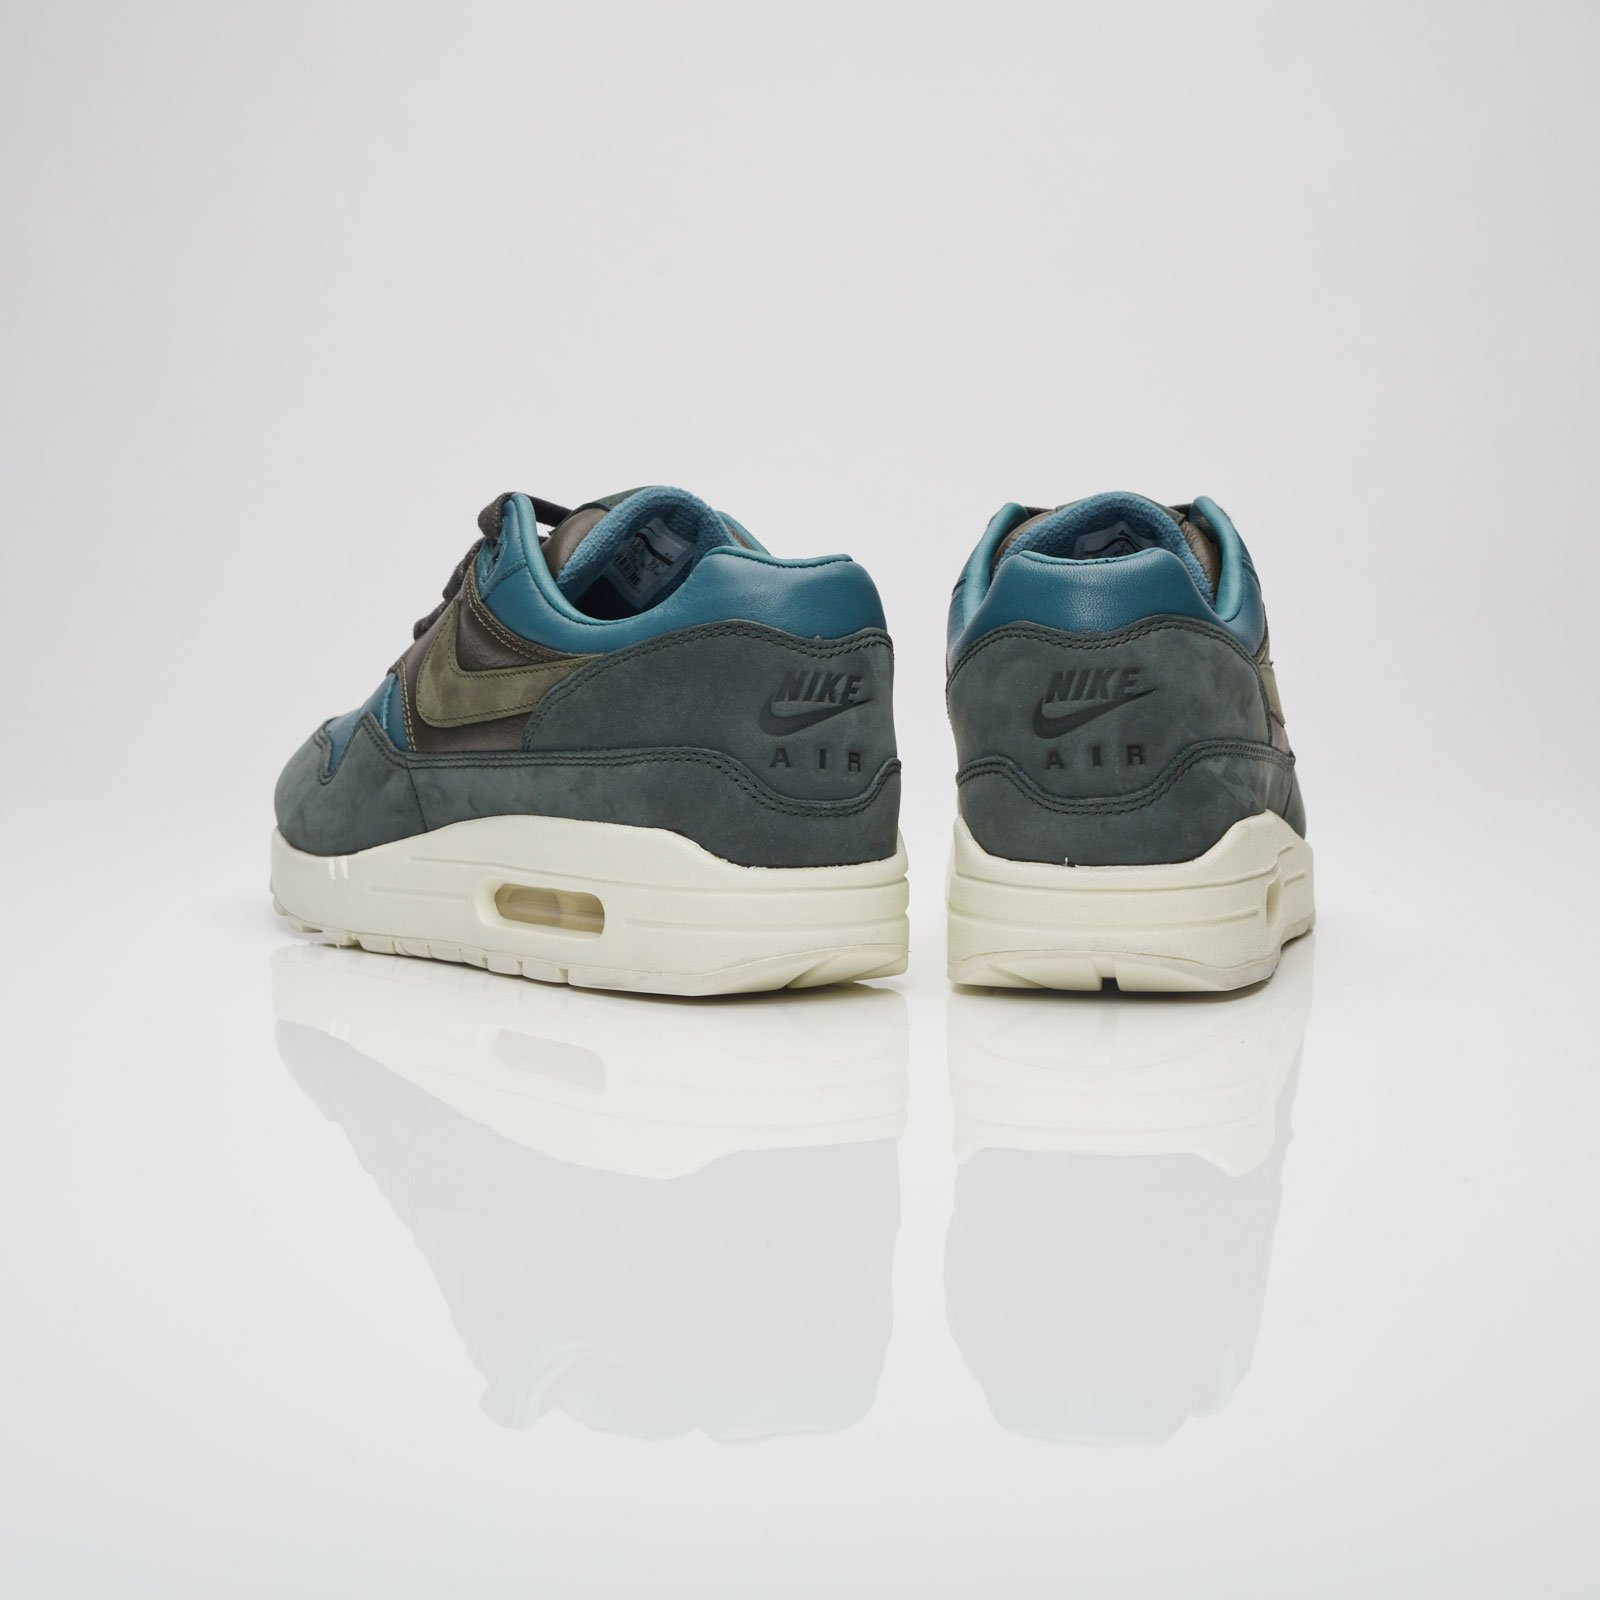 SneakersnstuffSneakers 300 1 Pinnacle Nike Max 859554 Air vmyN80wnO